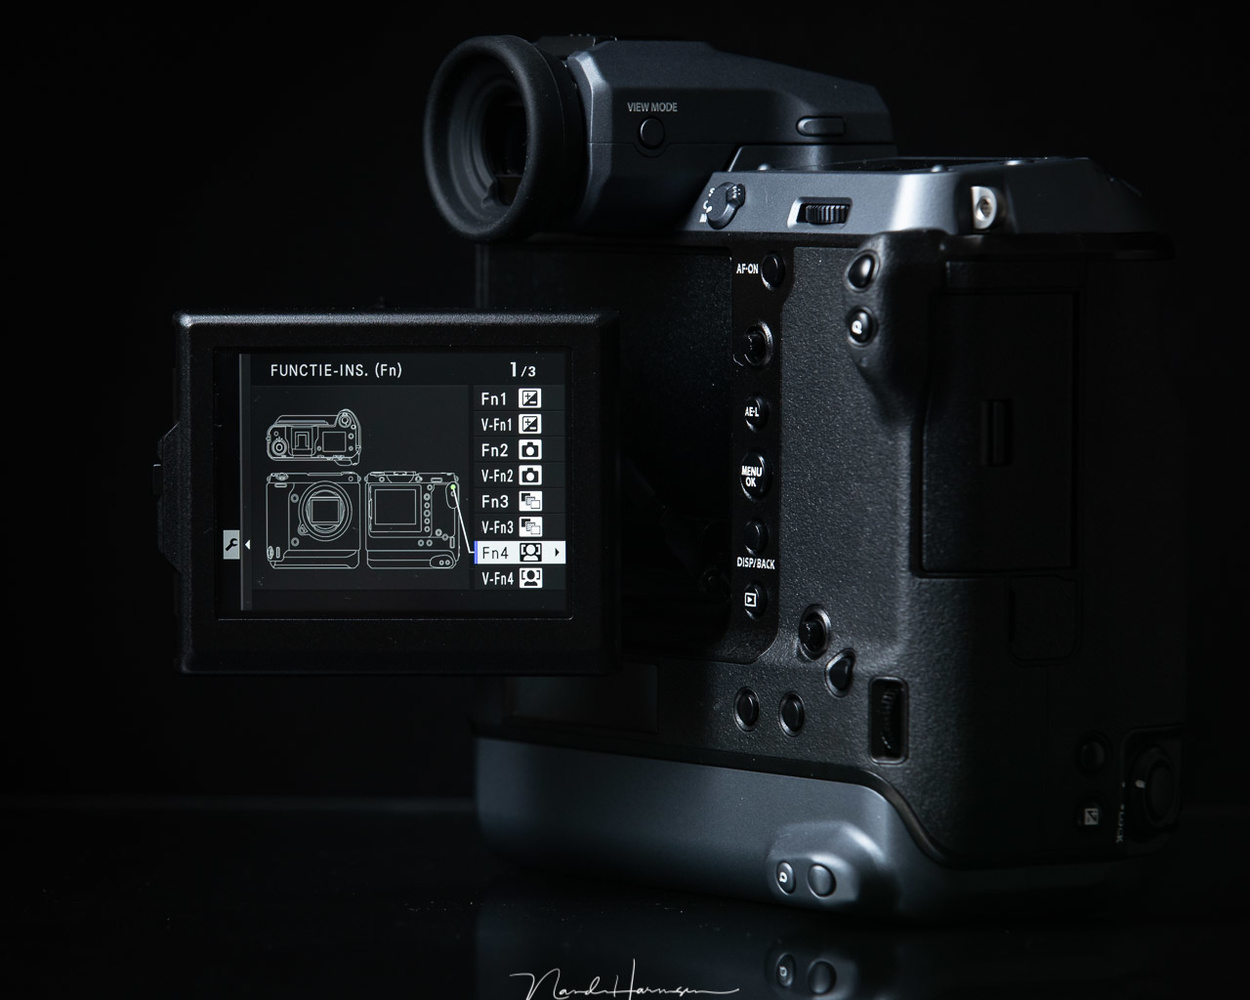 The Fujifilm GFX100 produces 102mp images with one single click of a button. This resolution is amazing.